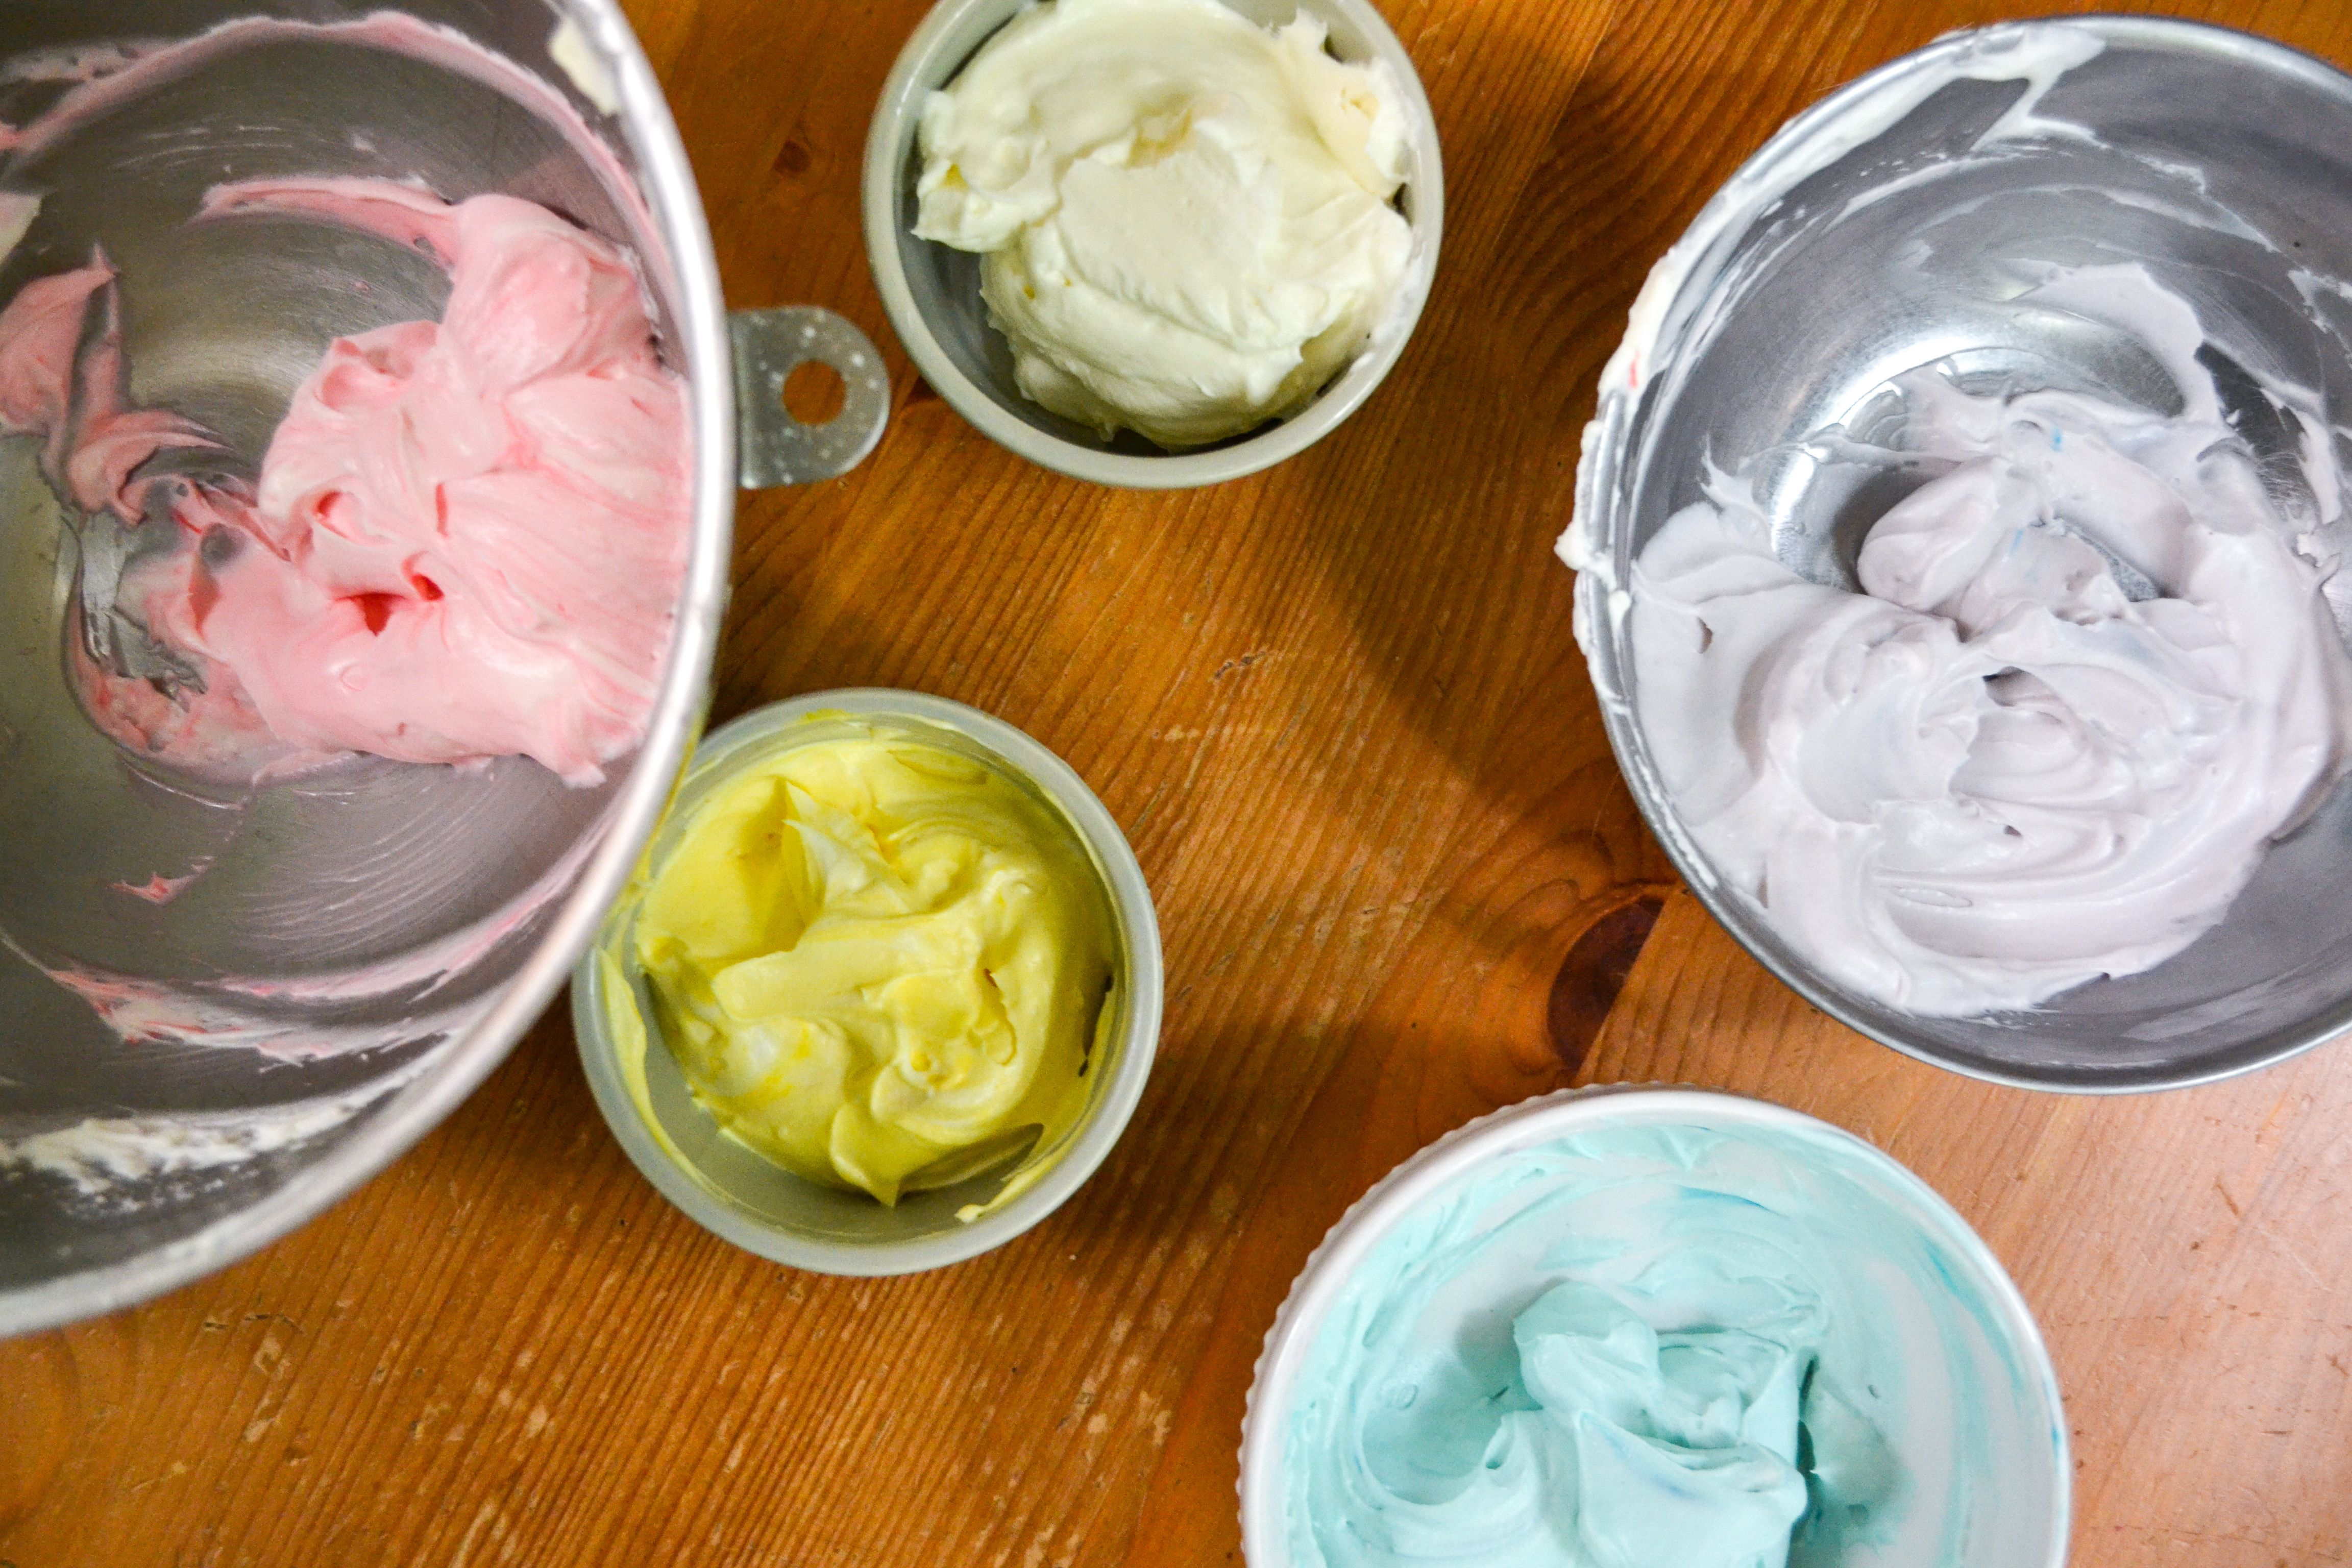 5 bowls with varying pastel colors of fruit dip